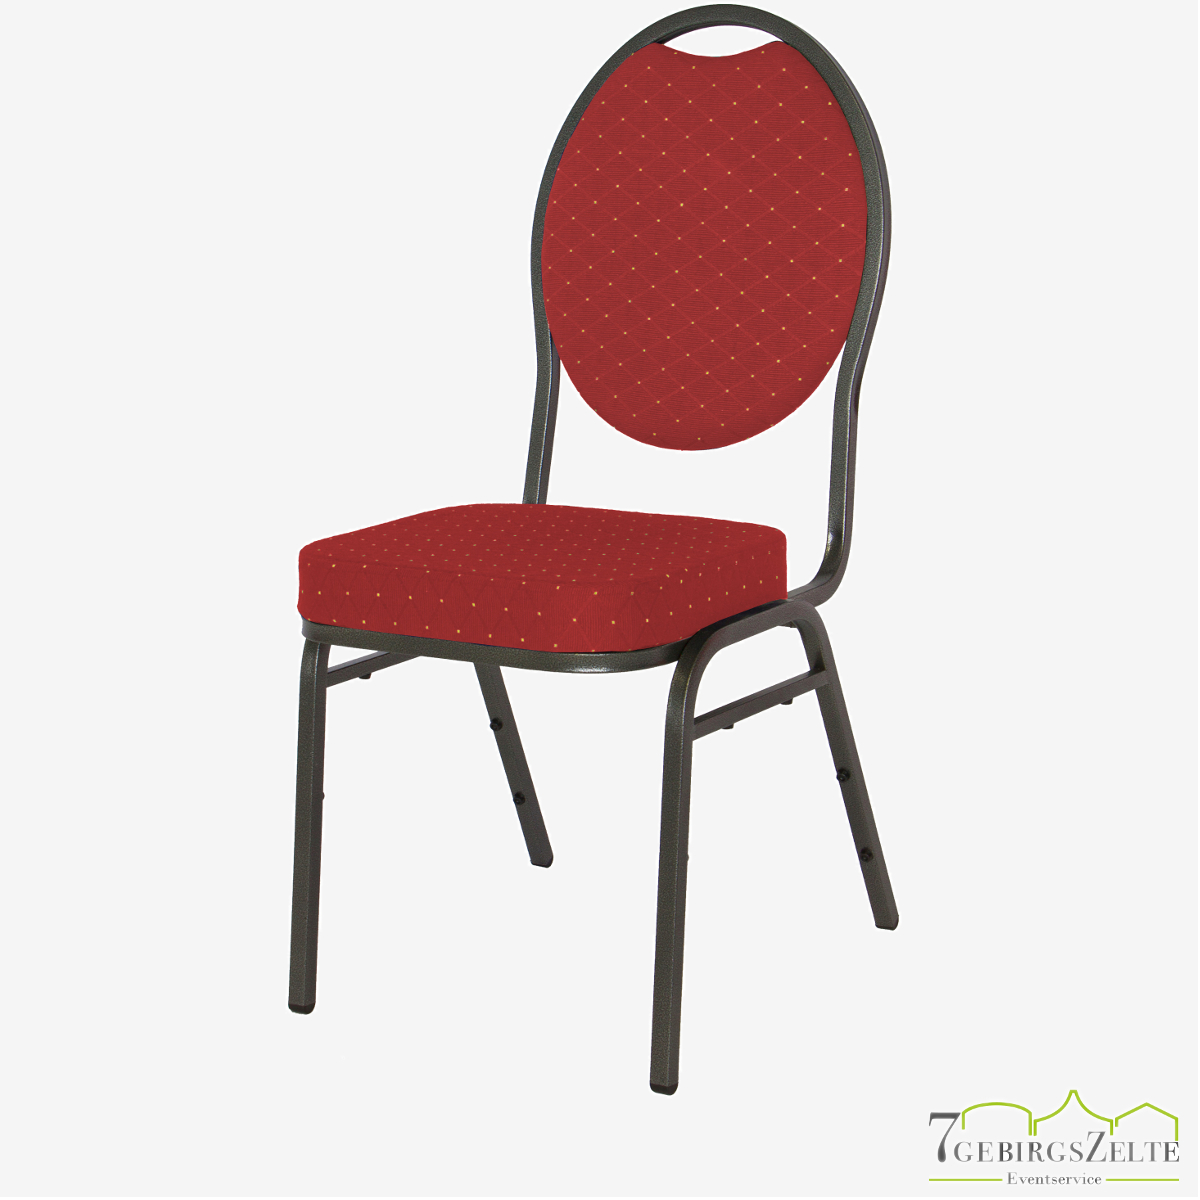 Stack chair Budget Red - hammerscale frame - fire retardant red/gold fabric